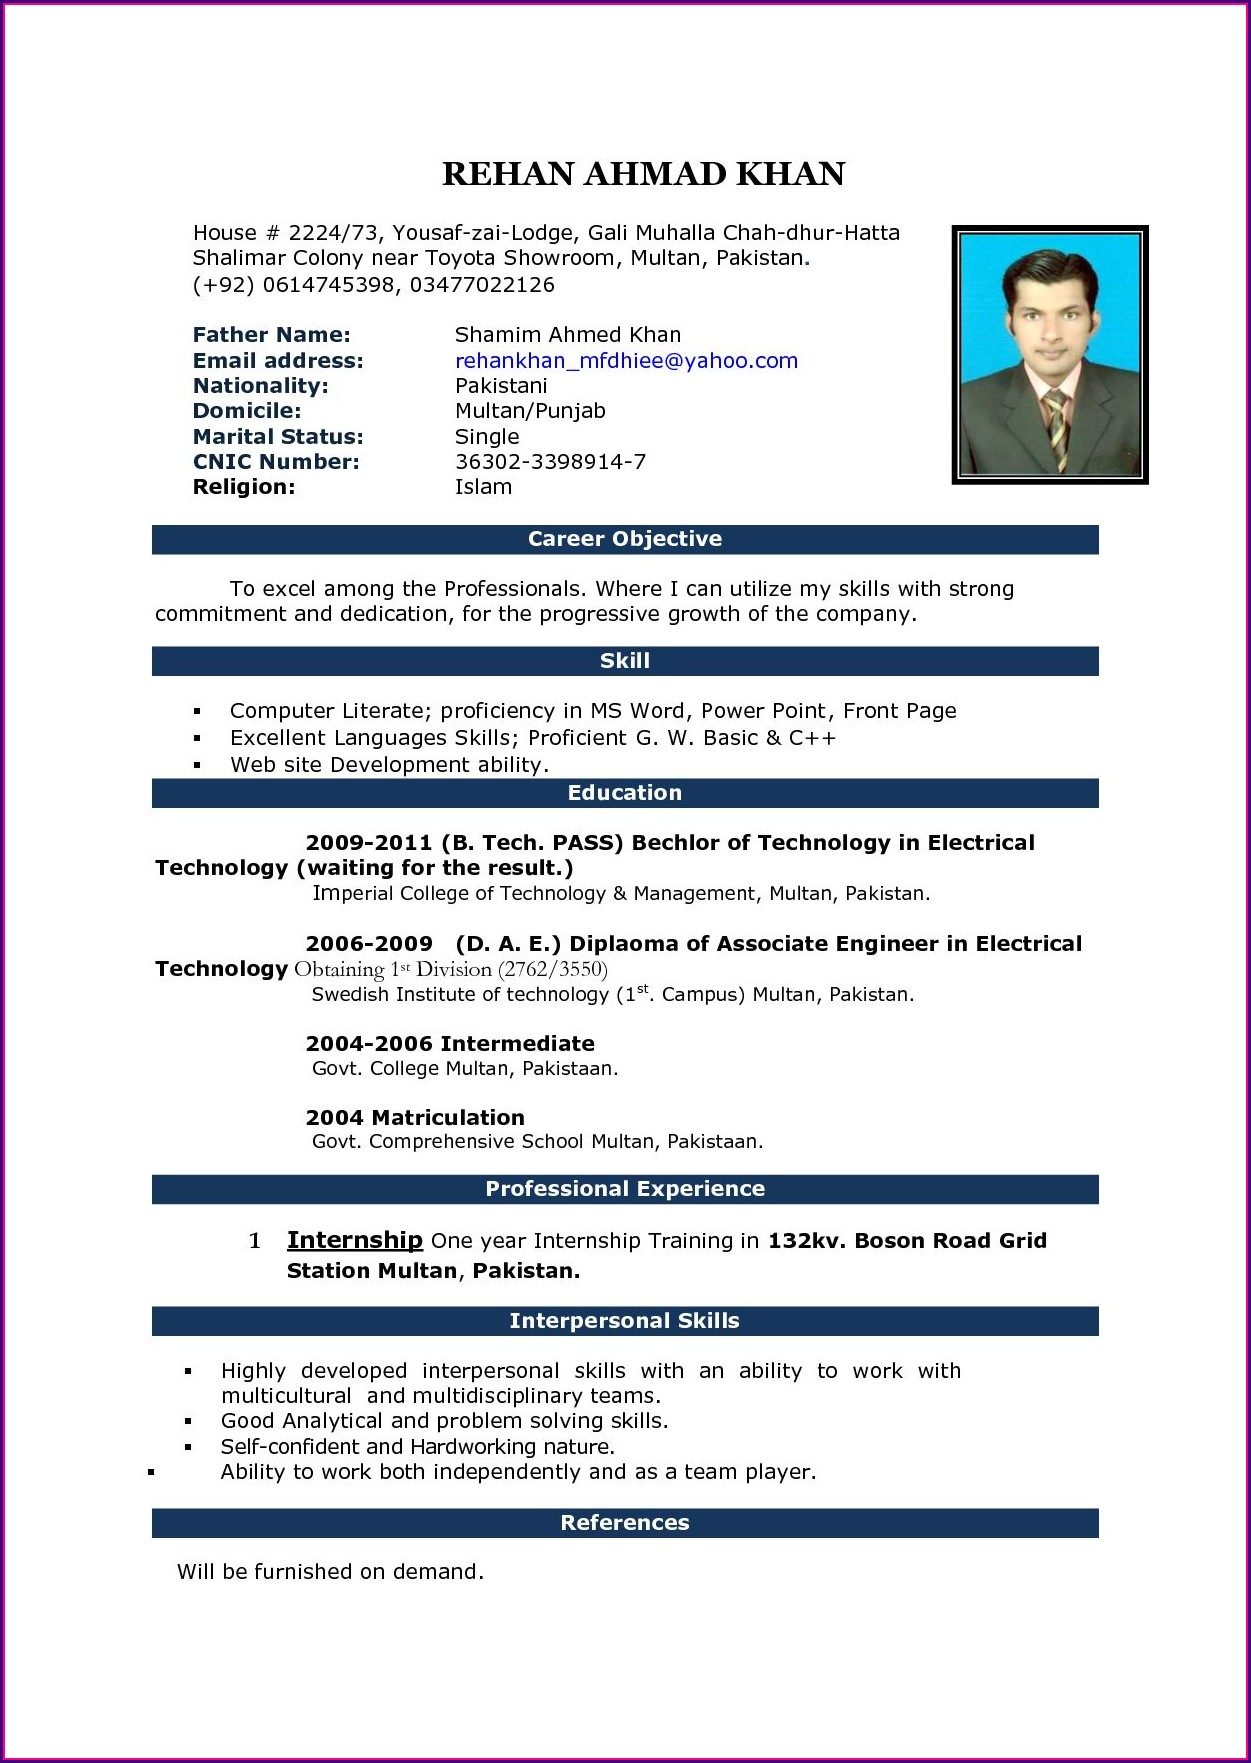 Fresher Resume Format Download In Ms Word India